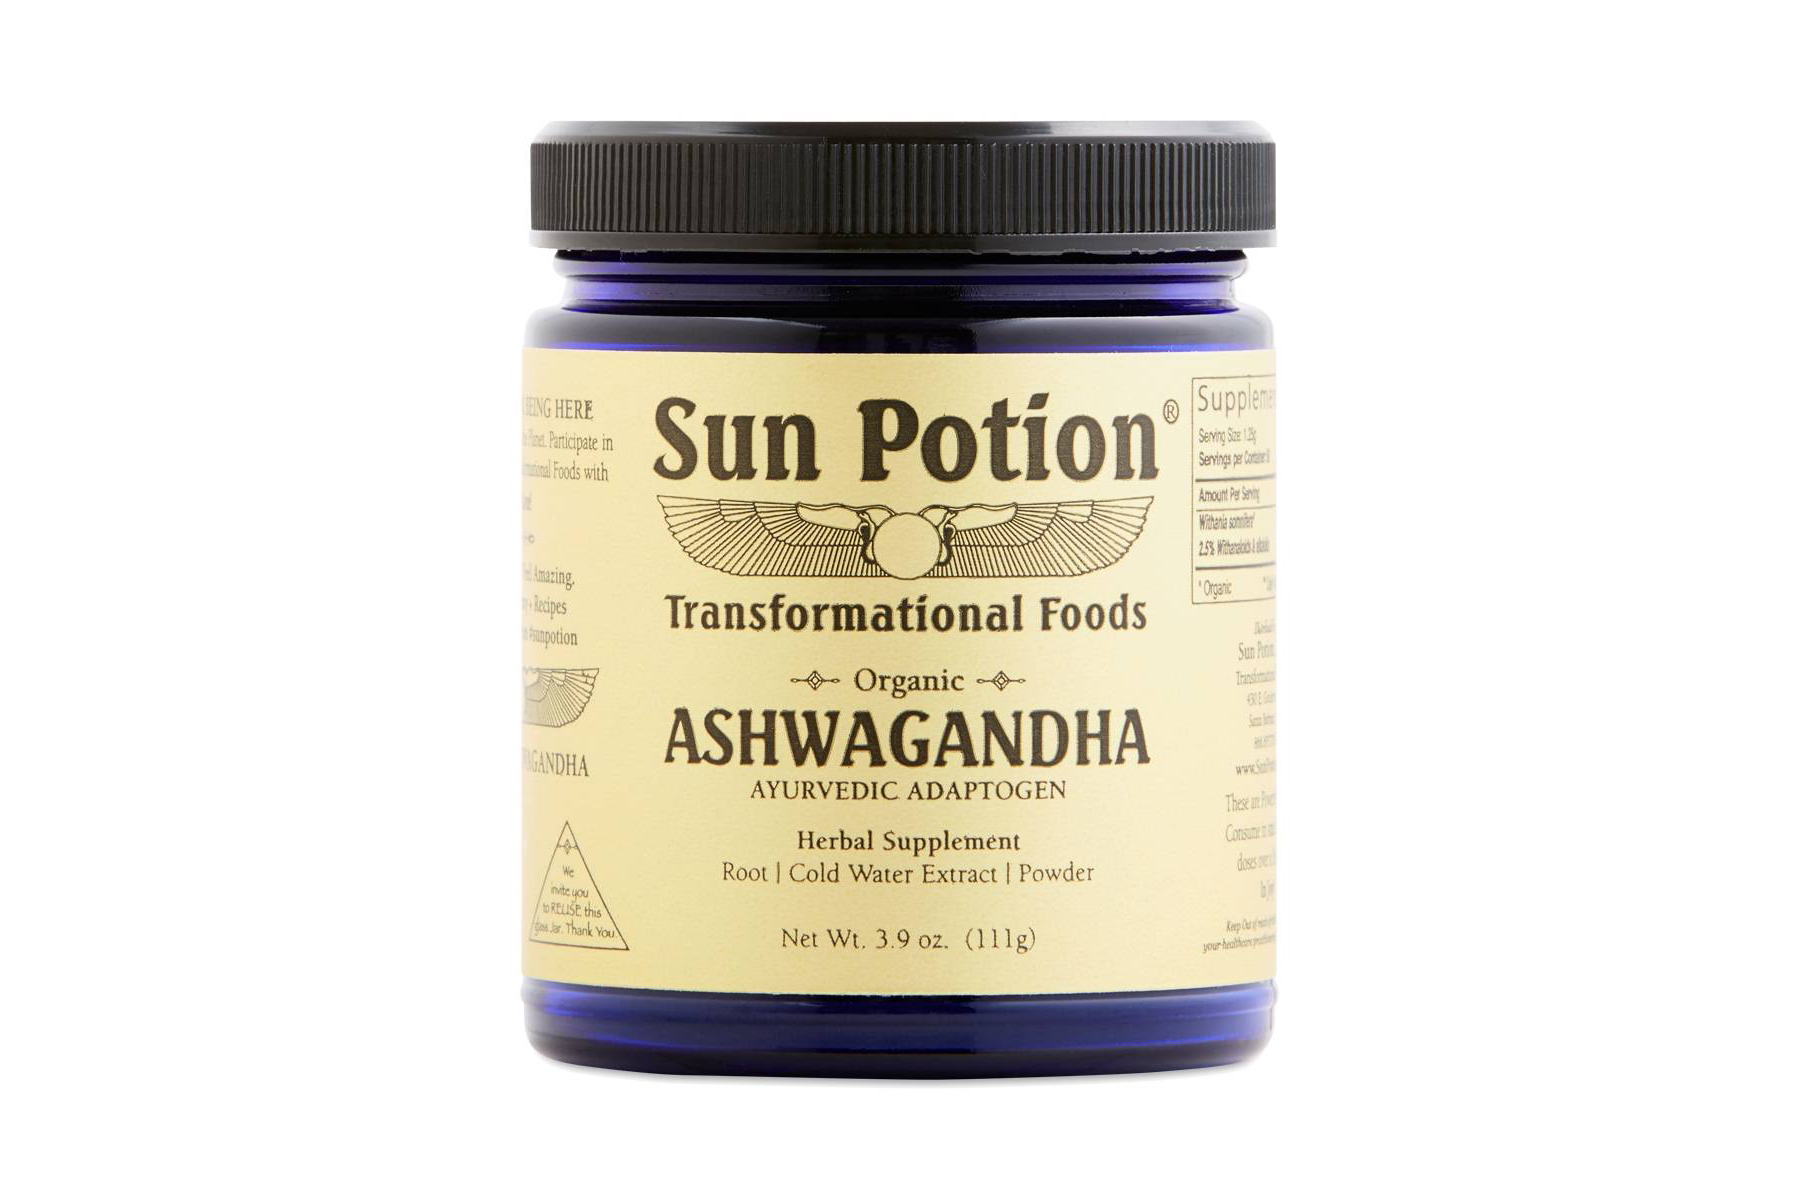 hair loss supplements sun potion